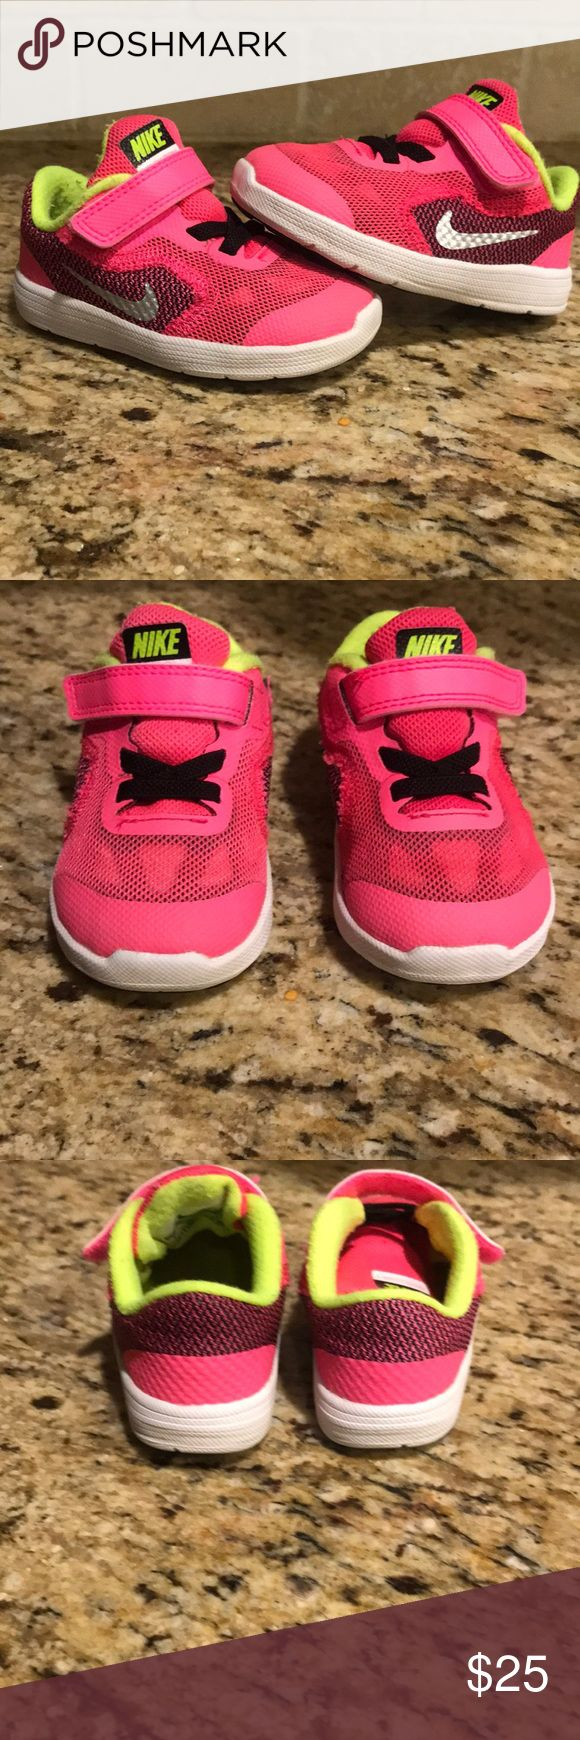 Toddler Girl Nike Revolution 3 Fantastic condition! Toddler girl Nike Revolution 3. Hot pink, silver, black, white, neon yellow. Only wear is minor piling on the inside. My daughter loved these! Freshly washed. No trades. Bundle for discount. Nike Shoes Sneakers